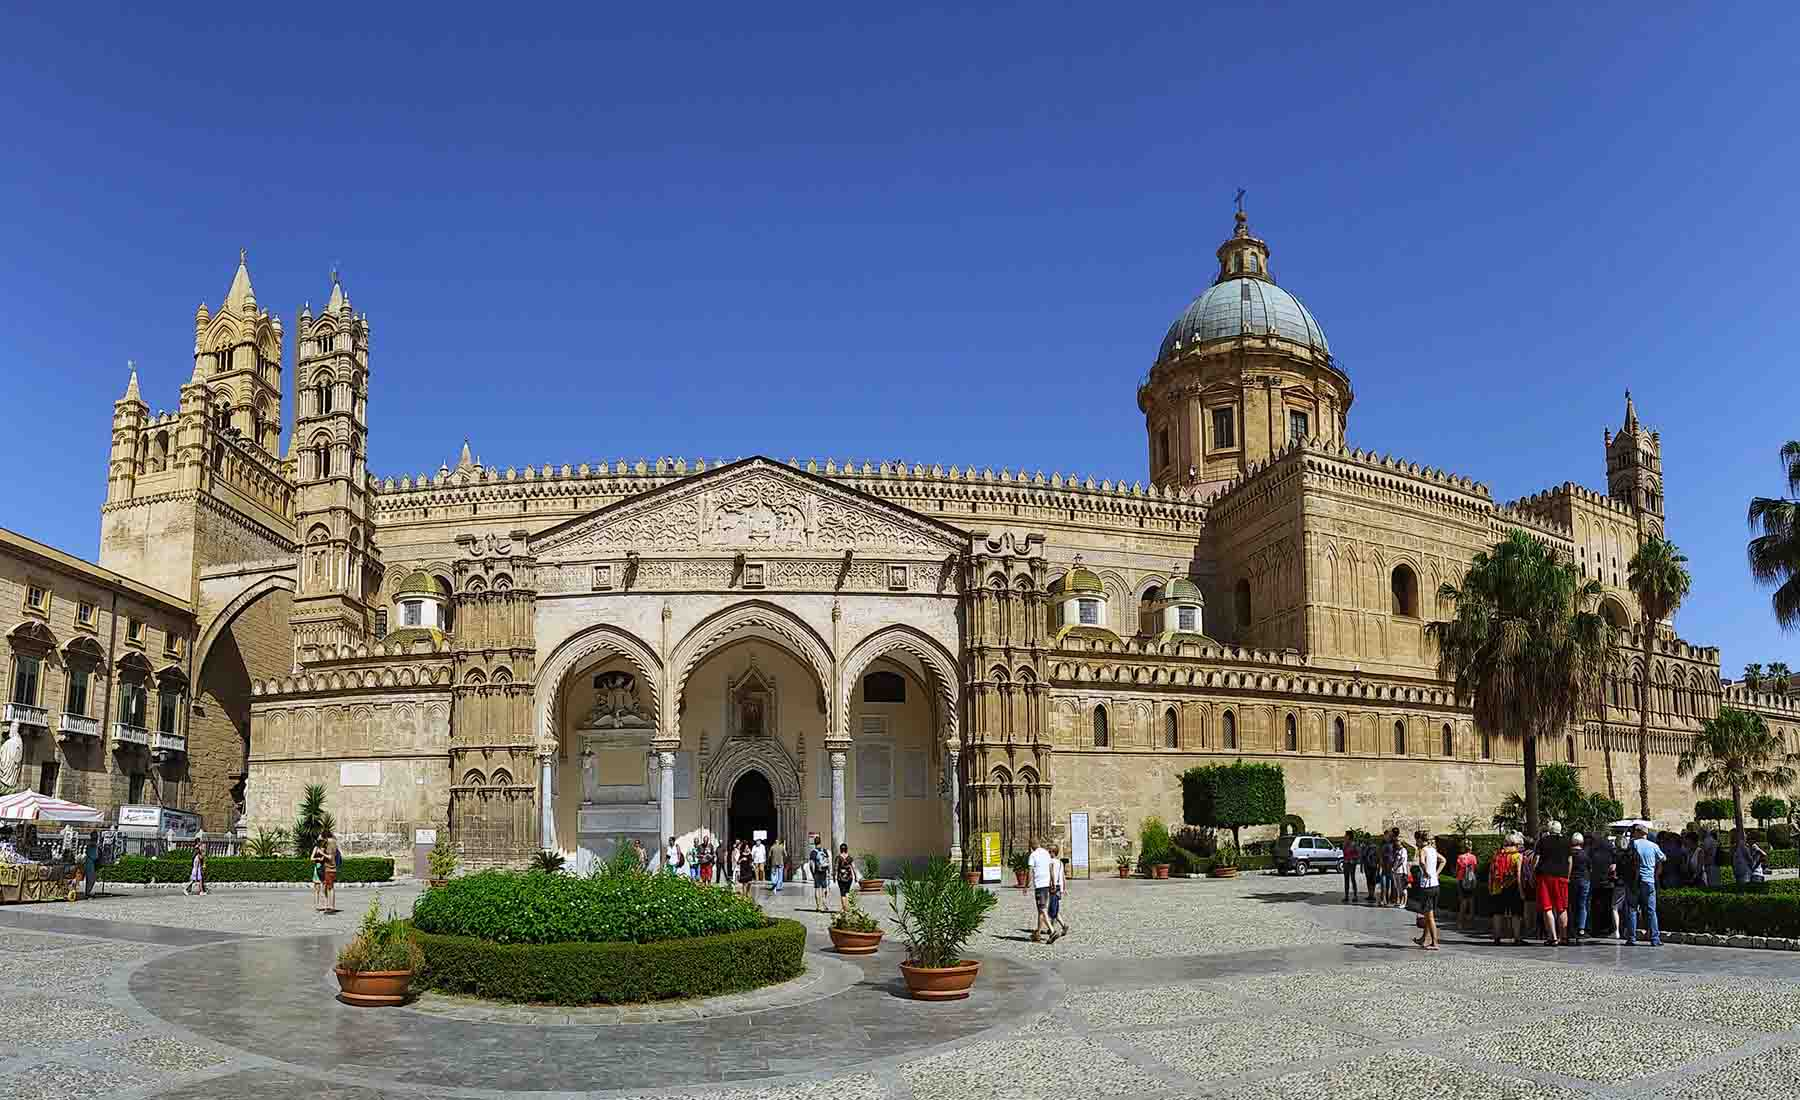 arabic architecture of Palermo cathedral